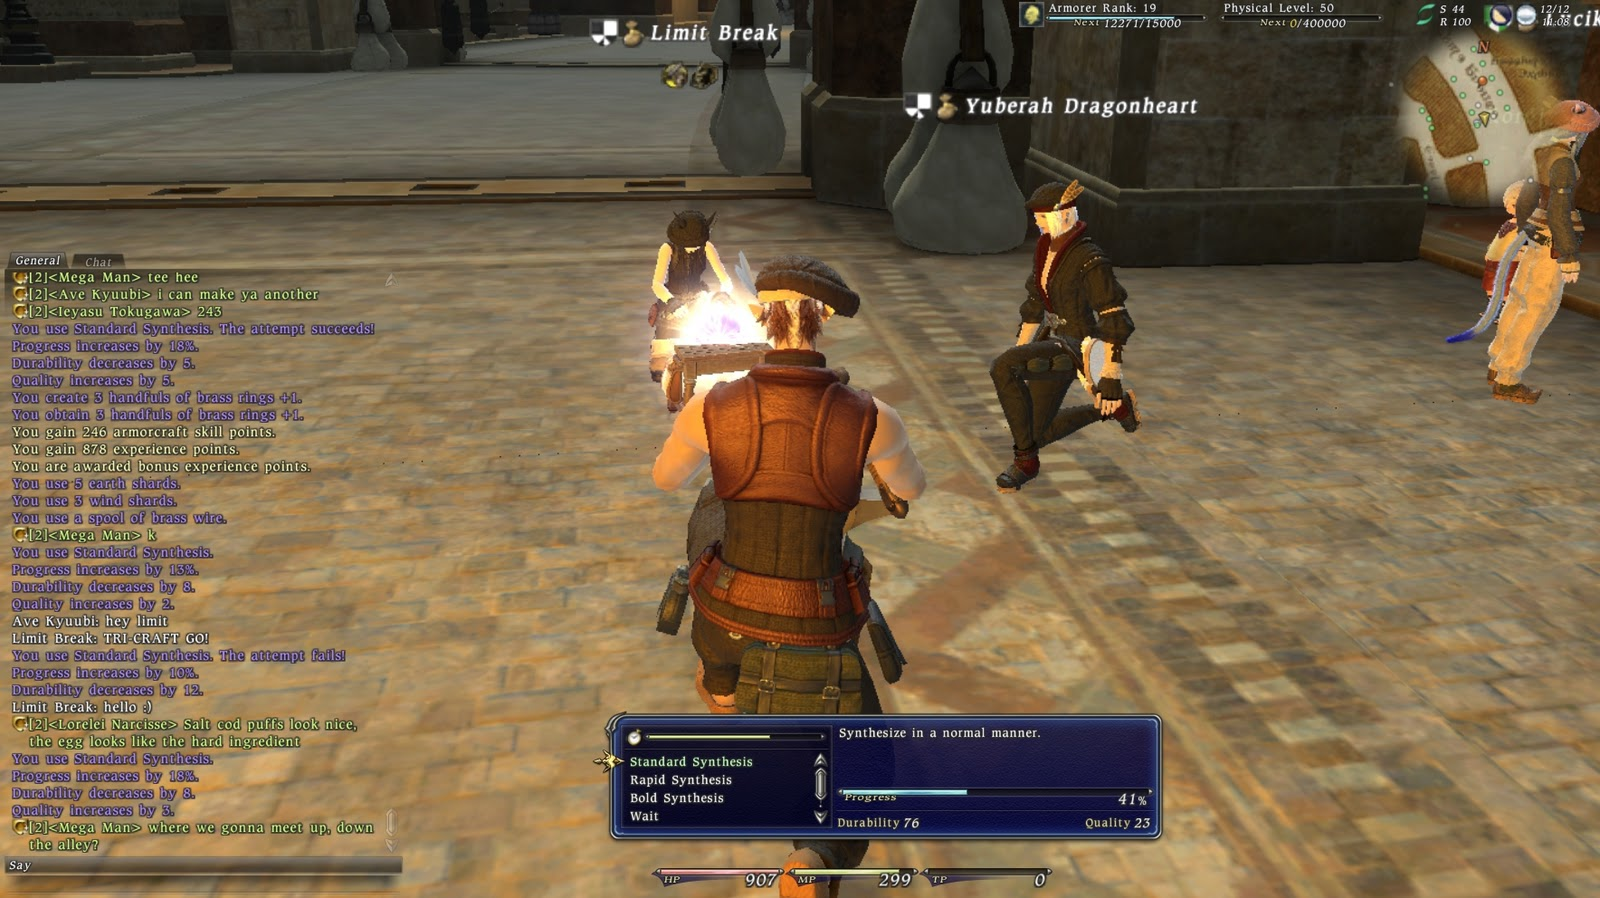 ff14 crafting guide a xiv crafting partys new ls 2011